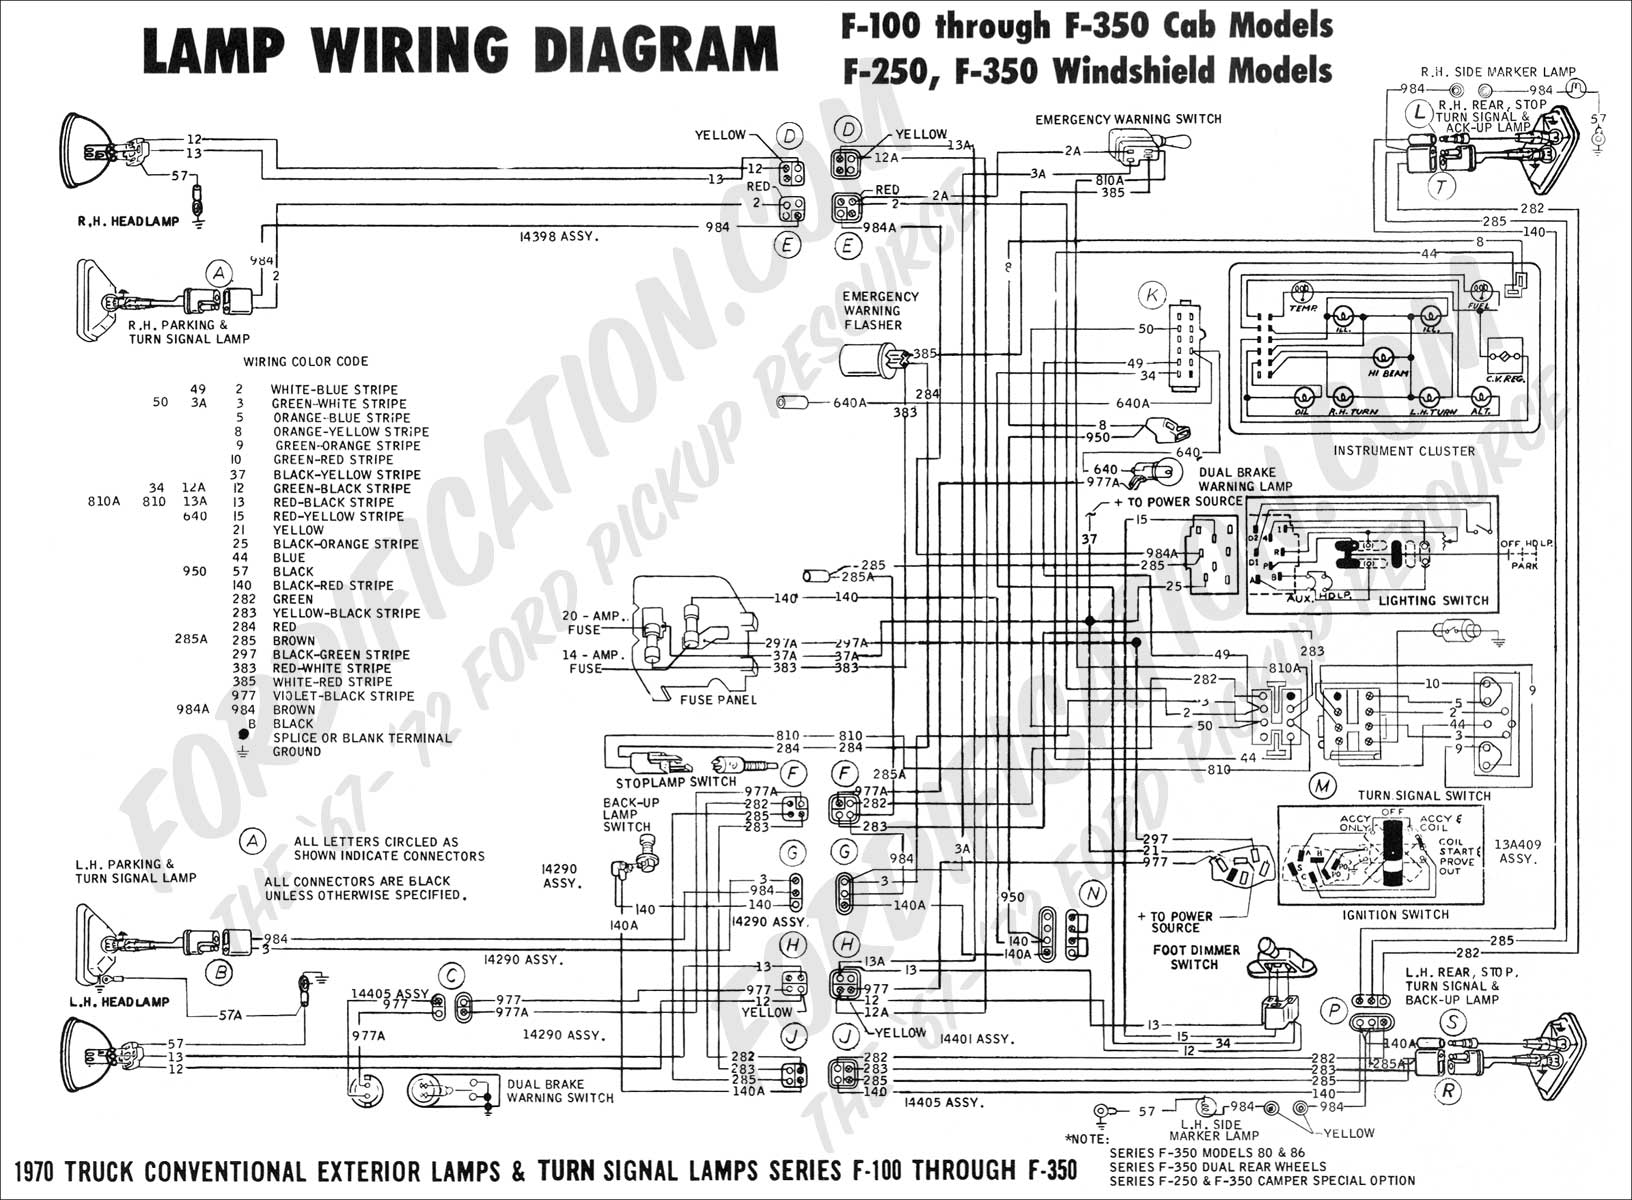 1995 ford f150 transmission wiring diagram ford truck technical drawings and schematics section h wiring  ford truck technical drawings and